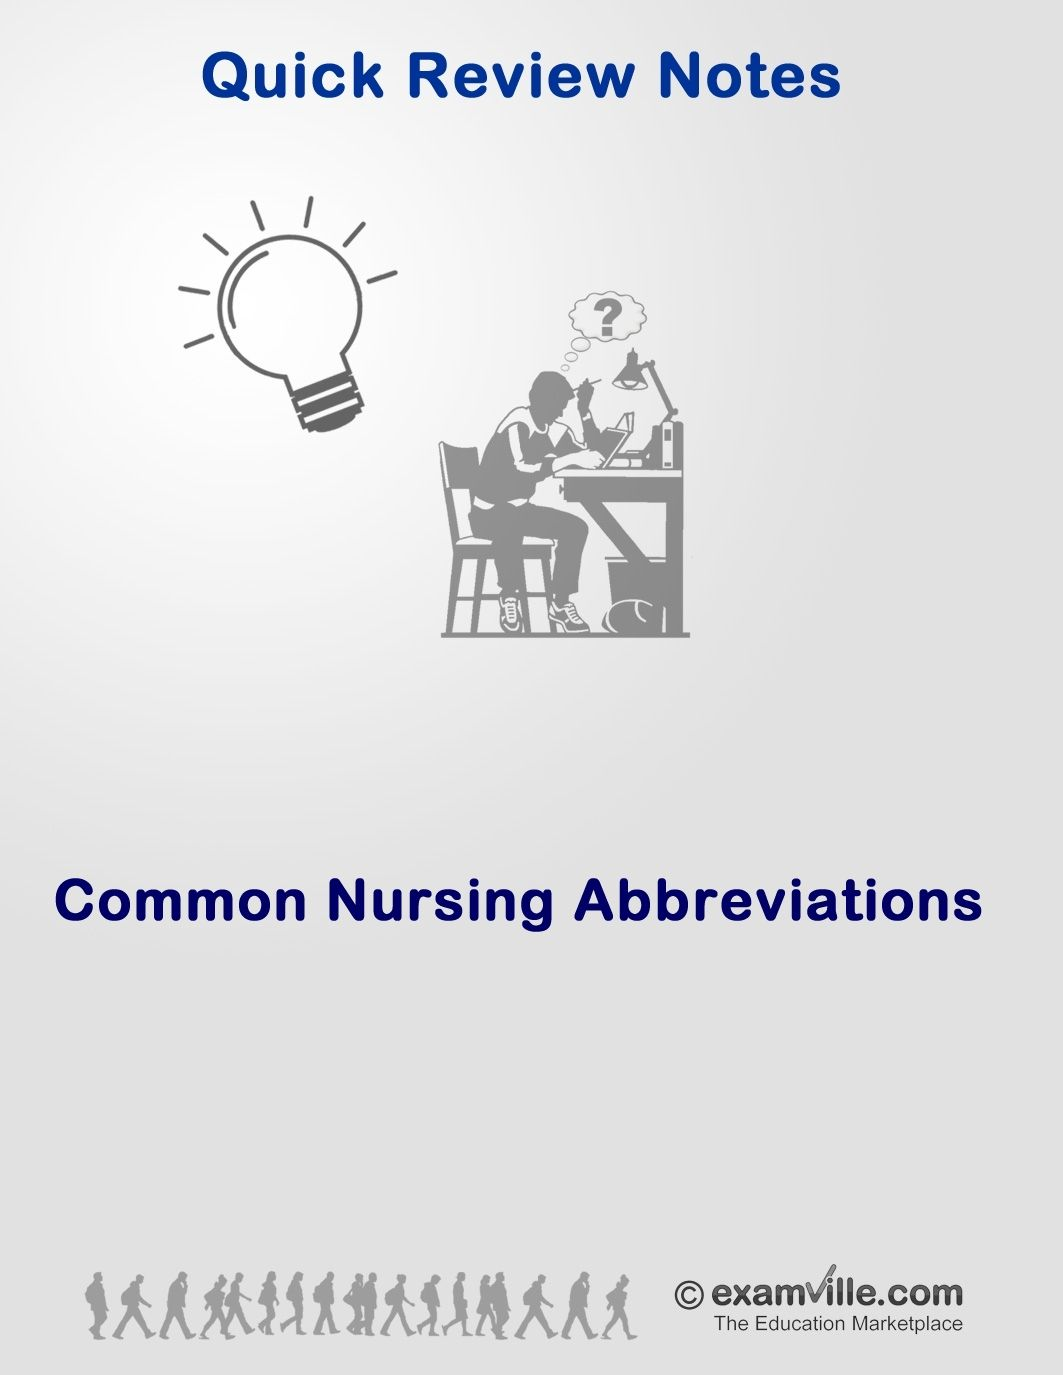 Common Nursing Abbreviations